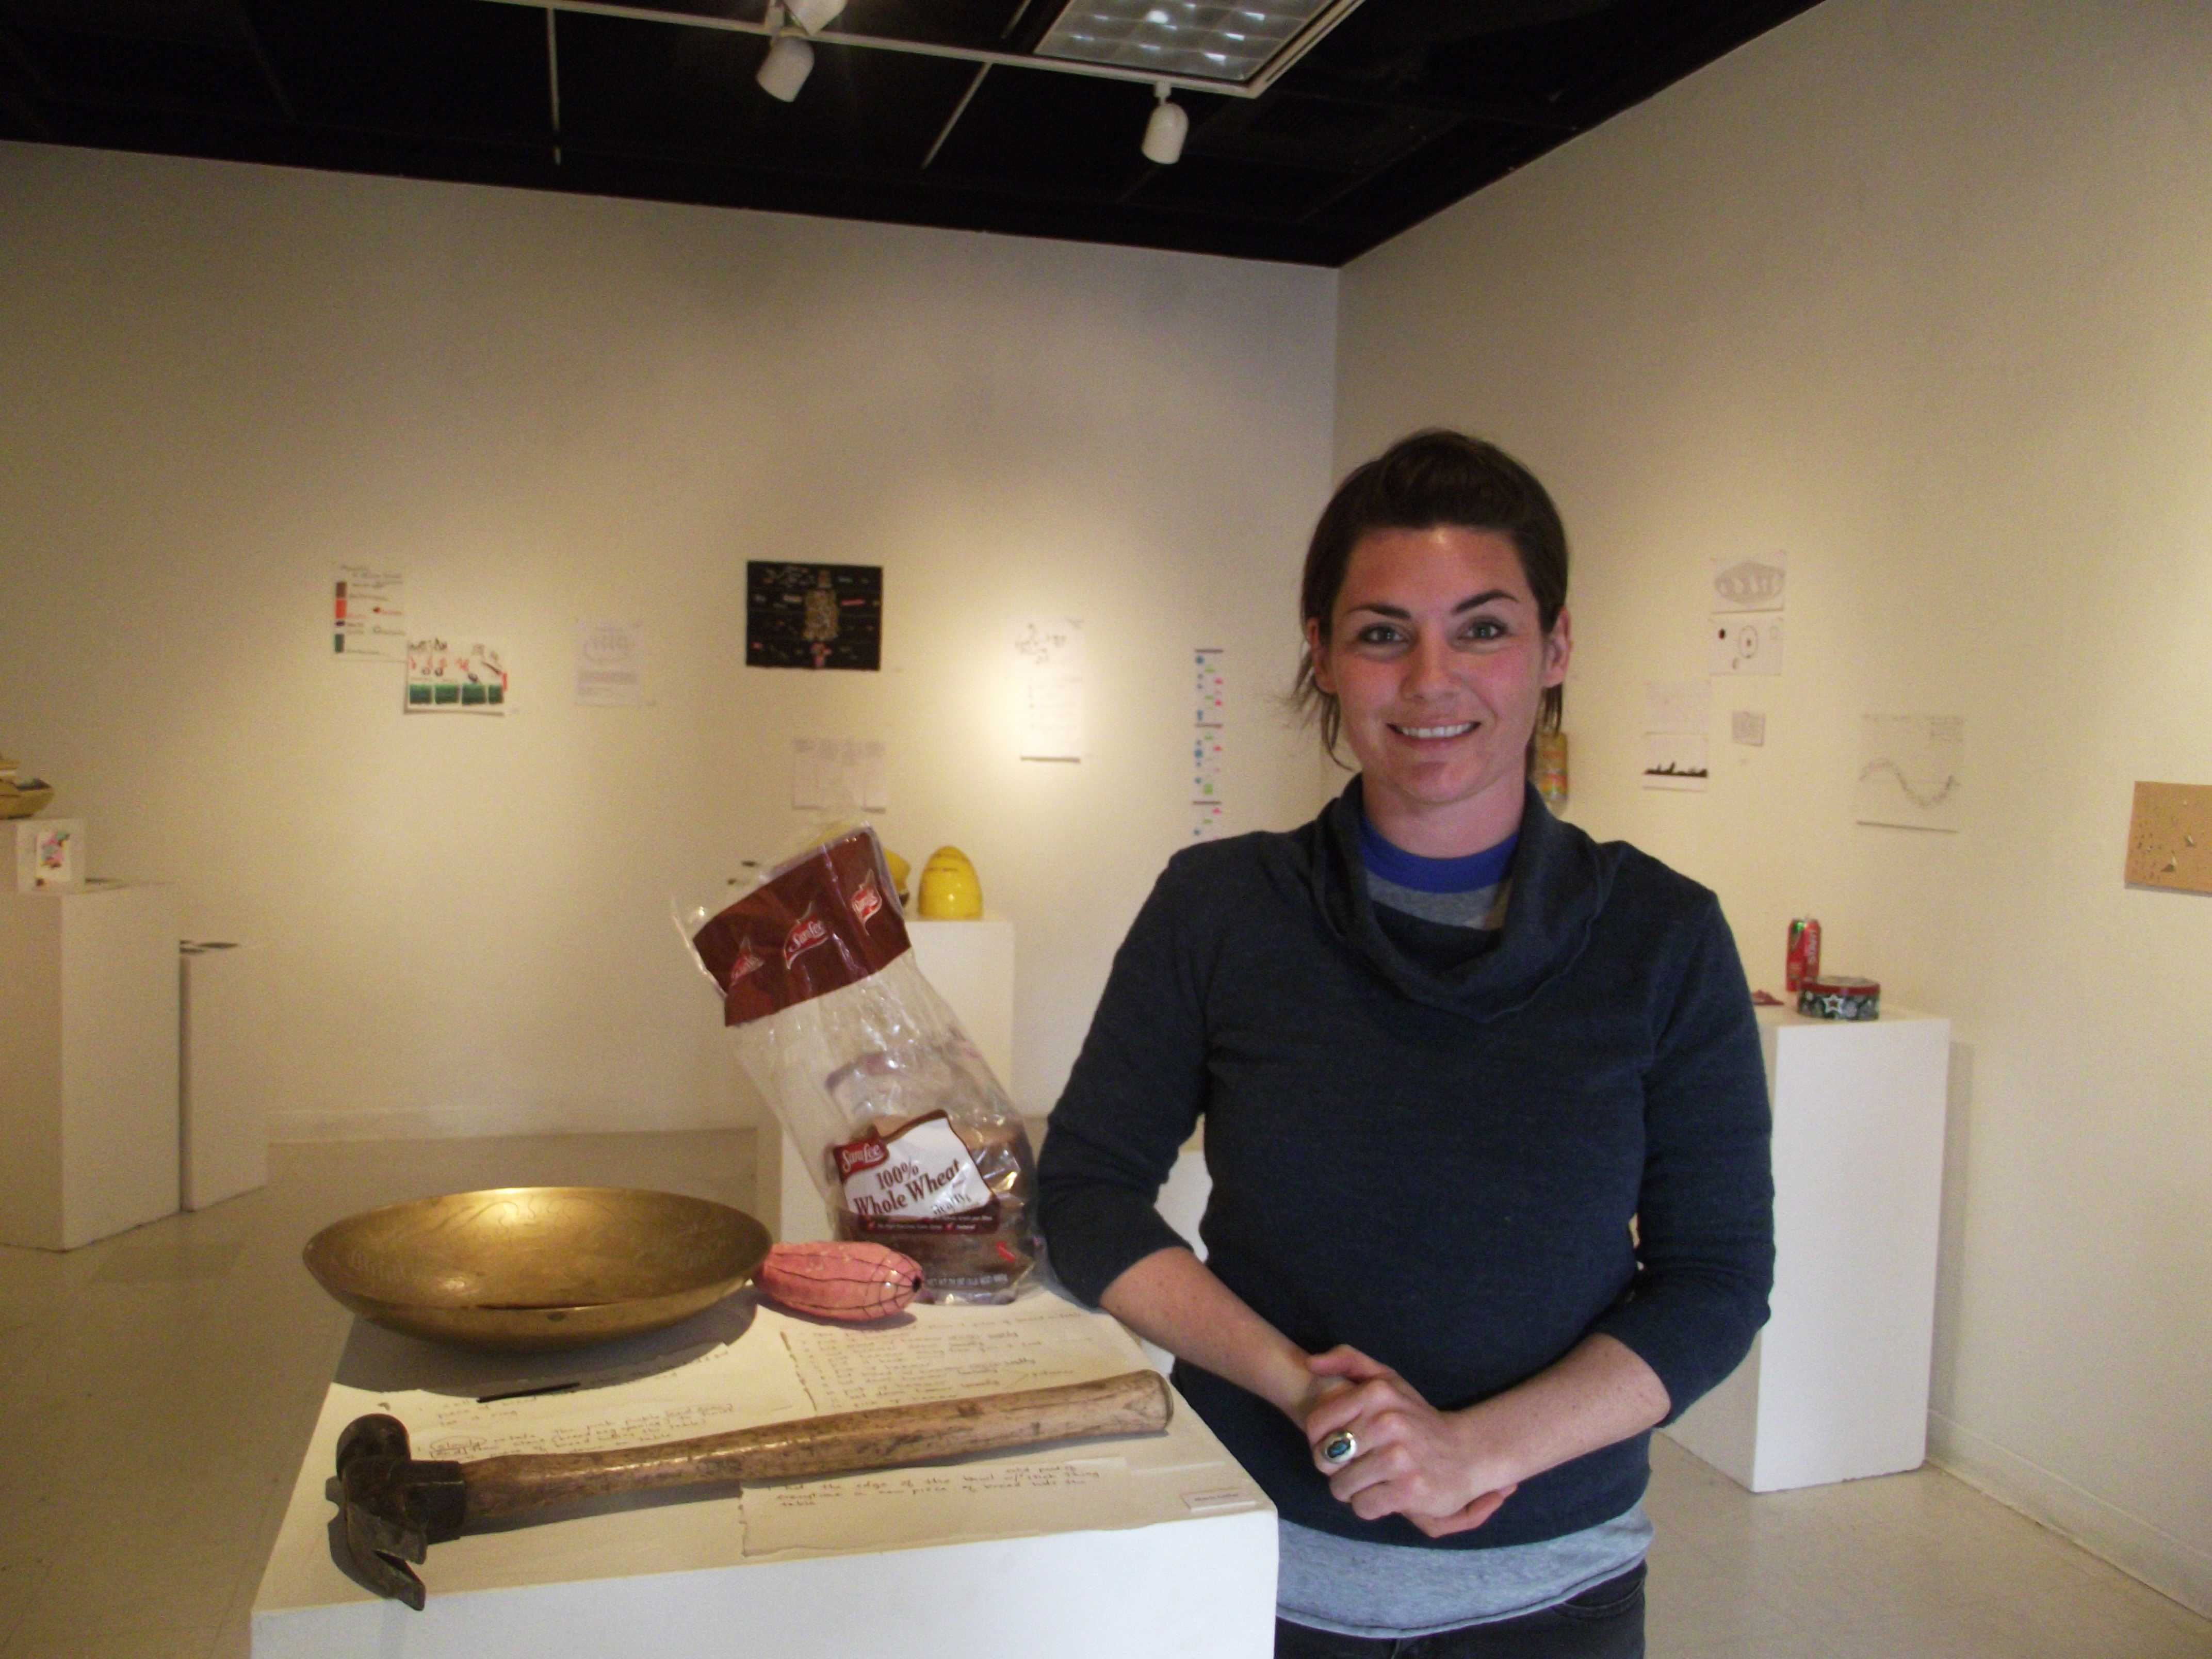 Marie Collor, a senior fine art and sculpture major, is standing next to her installment for the